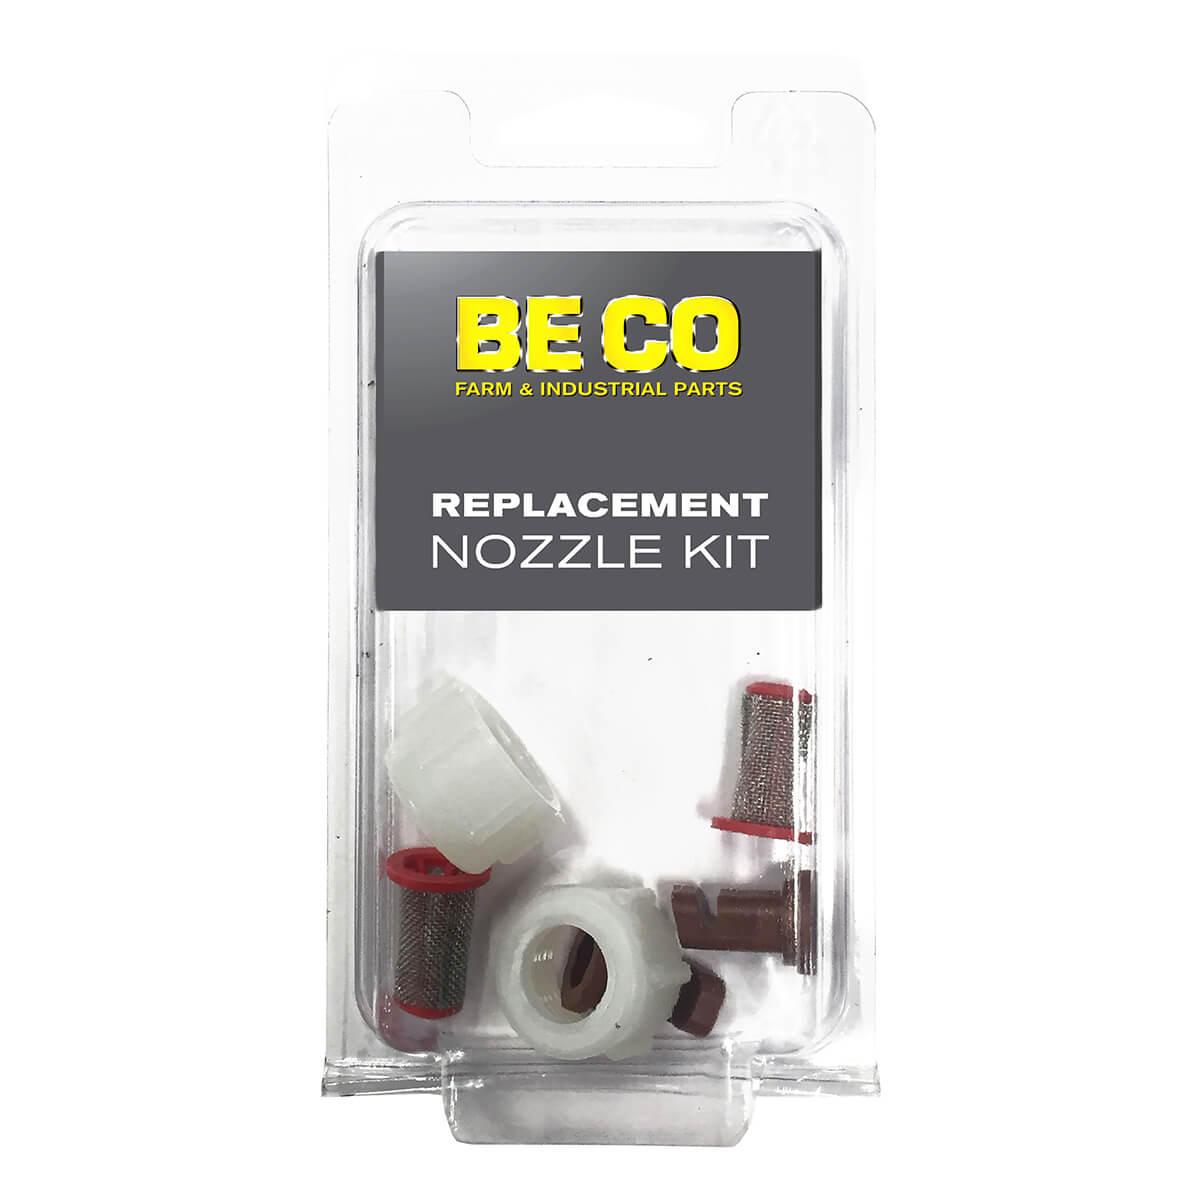 Spray Nozzle Replacement Kit for 10' Boom